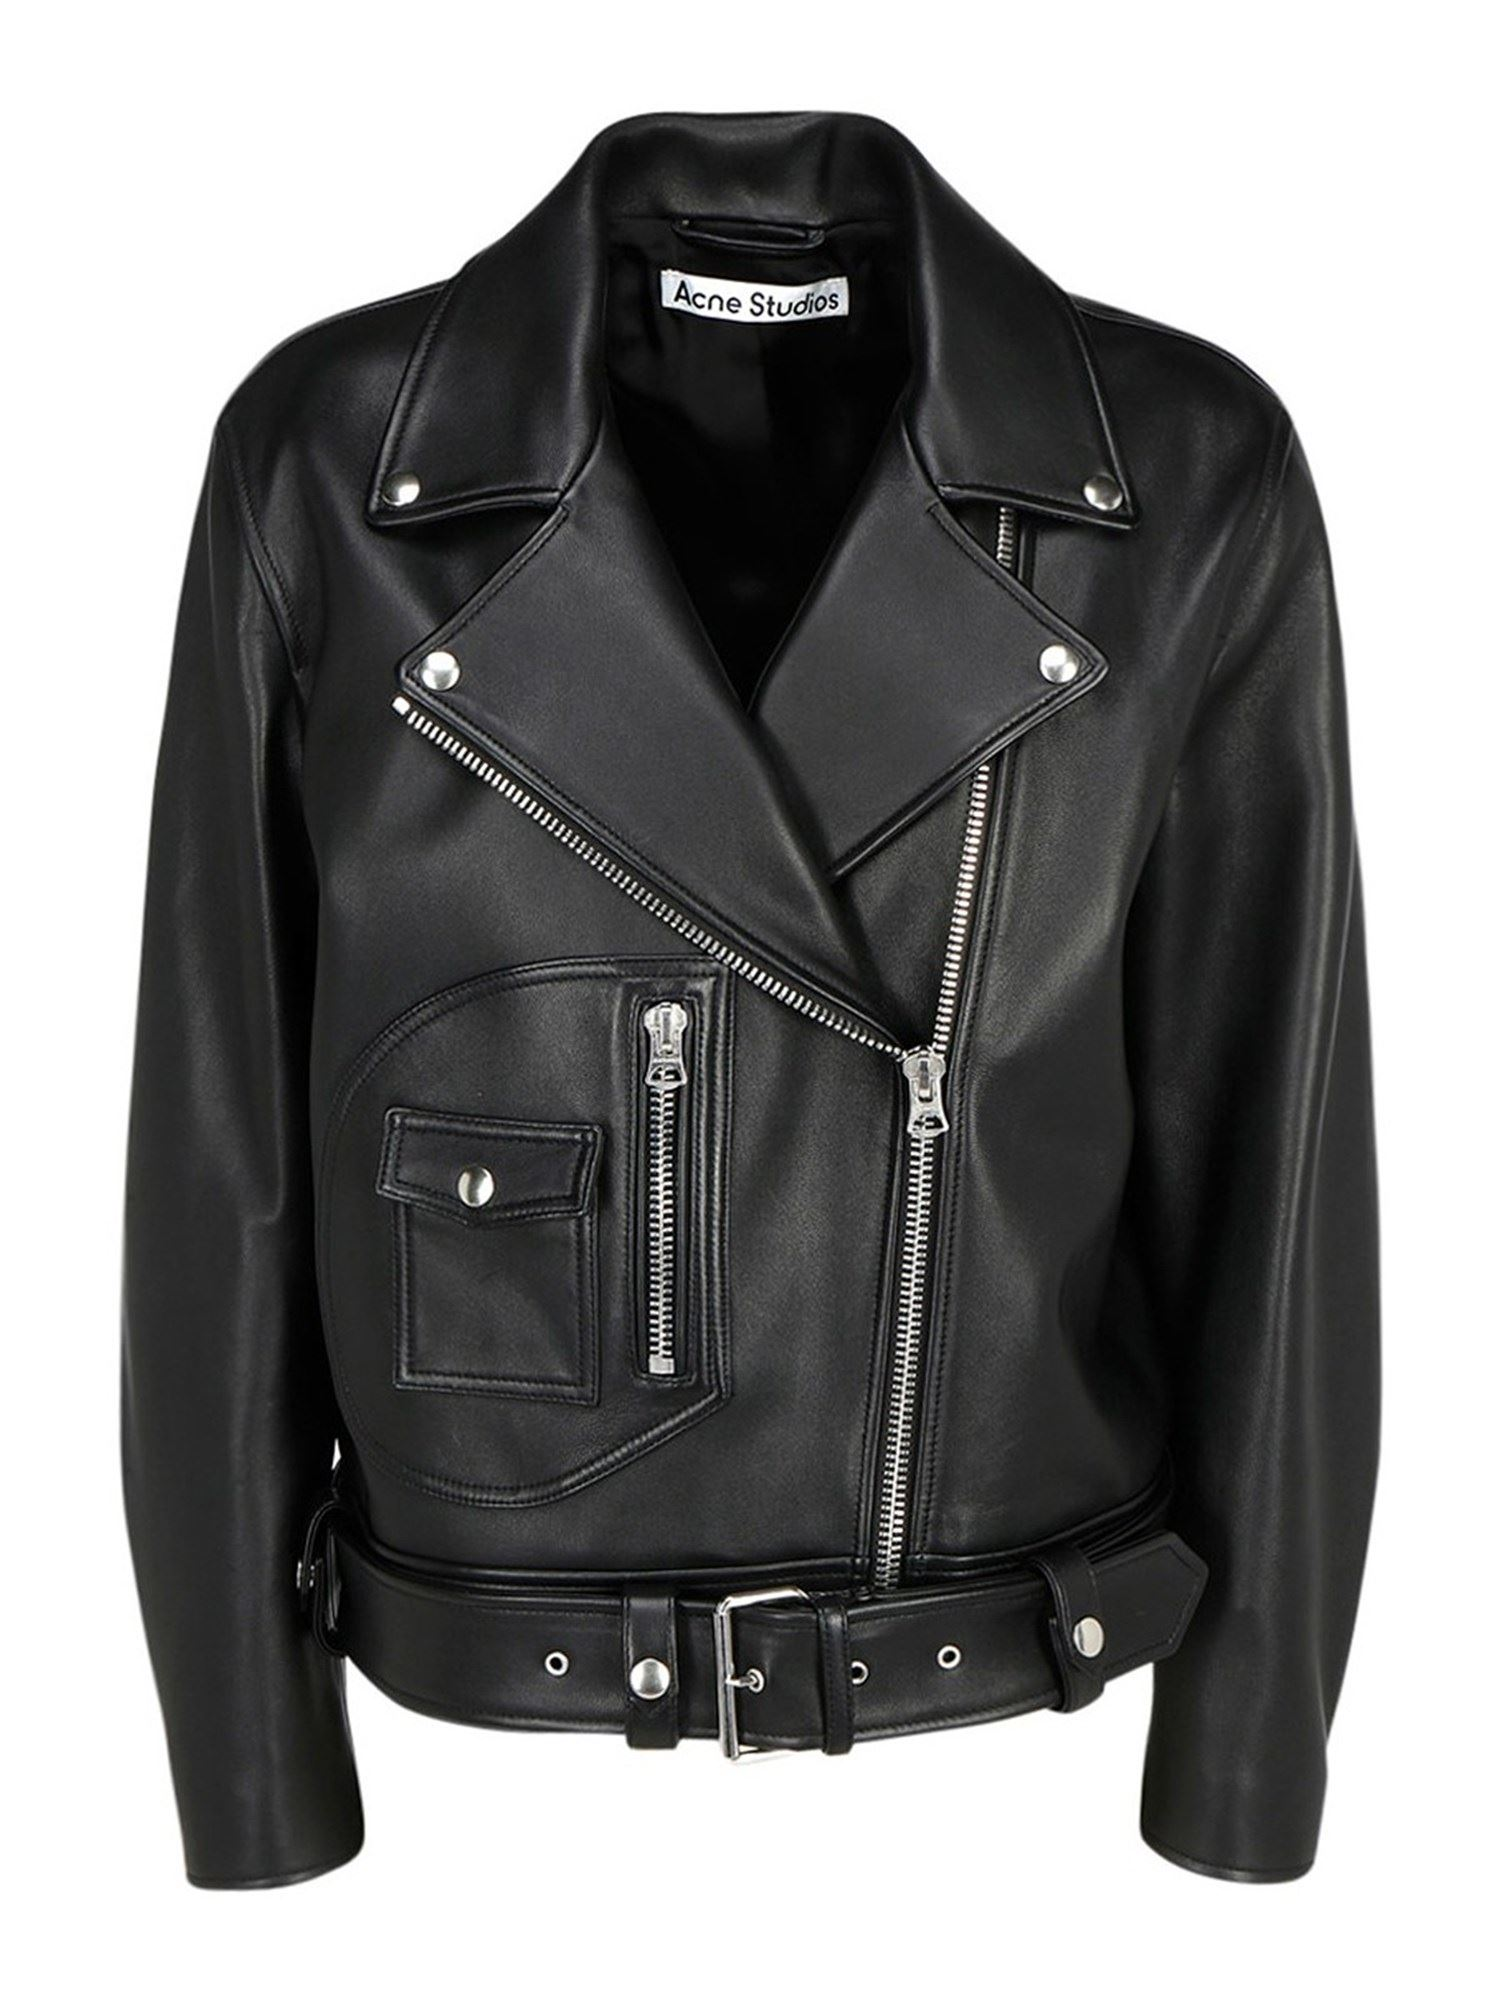 Acne Studios LEATHER BIKER JACKET IN BLACK